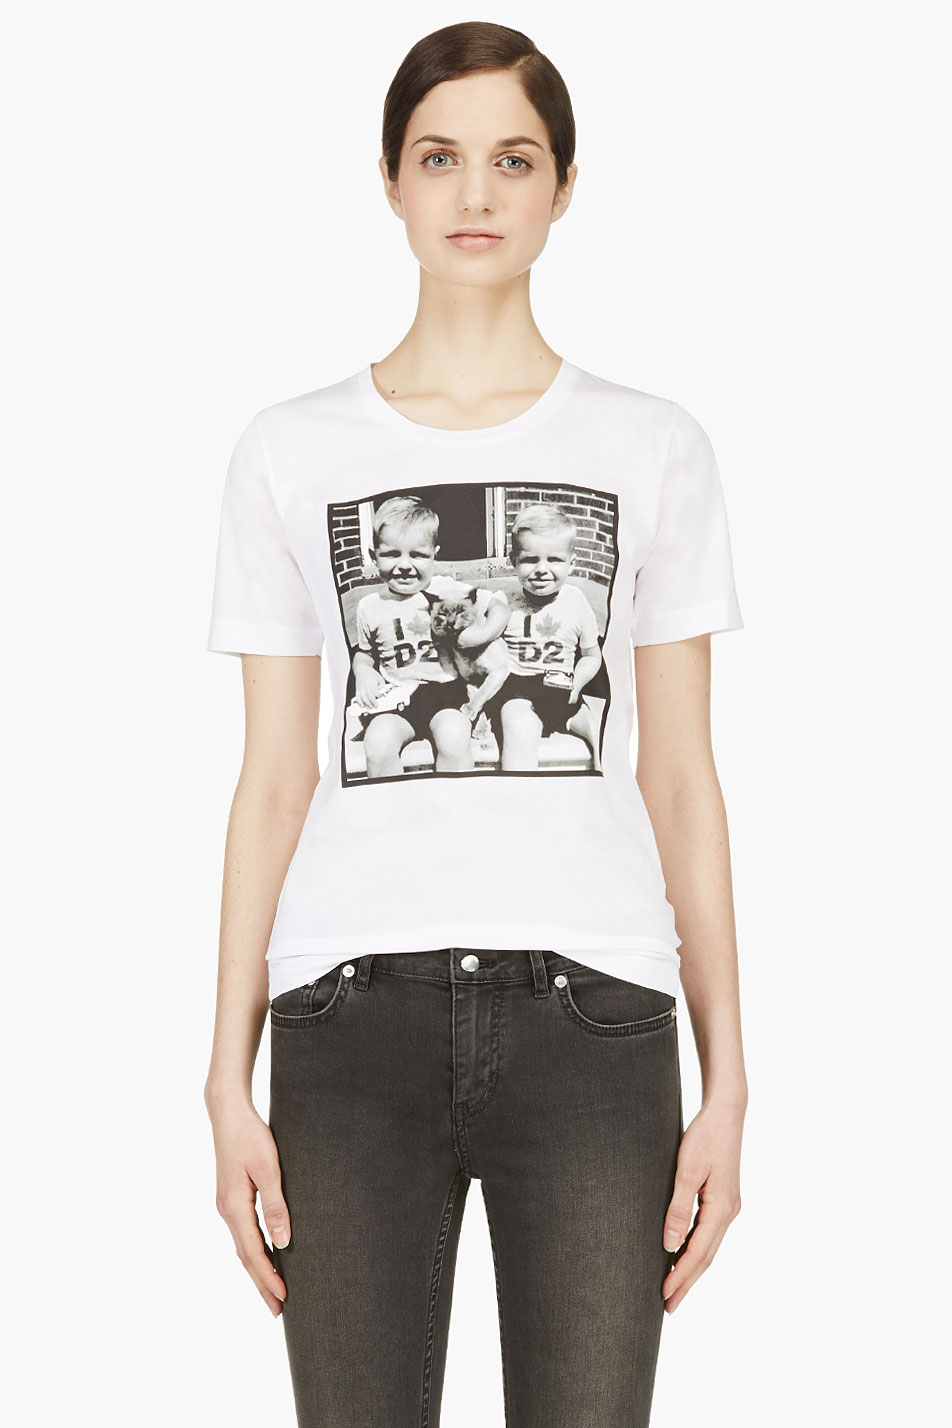 dsquared2 white twin babay pic t_shirt